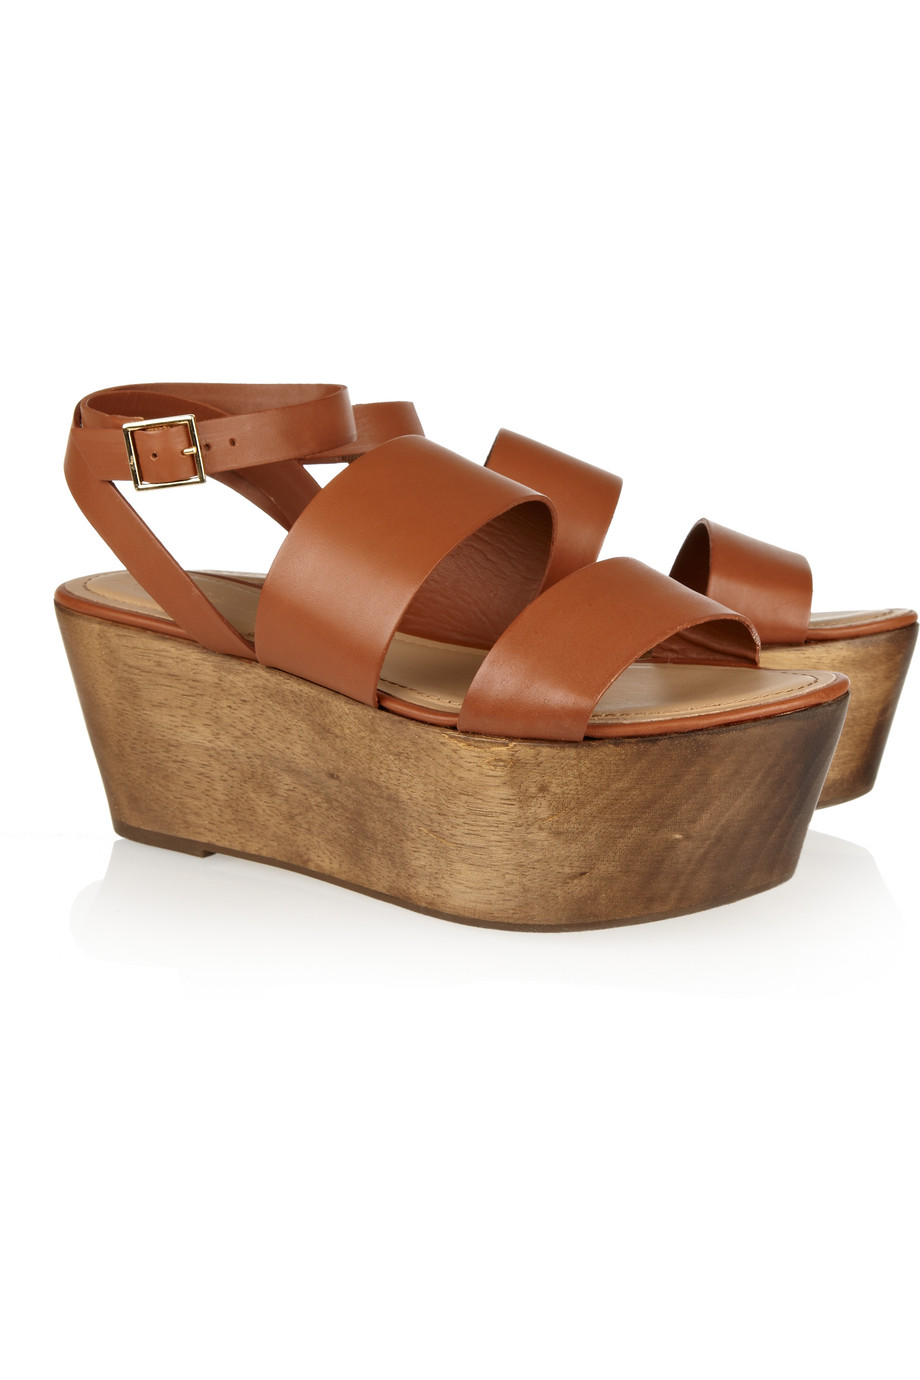 873e70904 Lyst - Elizabeth and James Bax Leather and Wood Platform Sandals in Brown